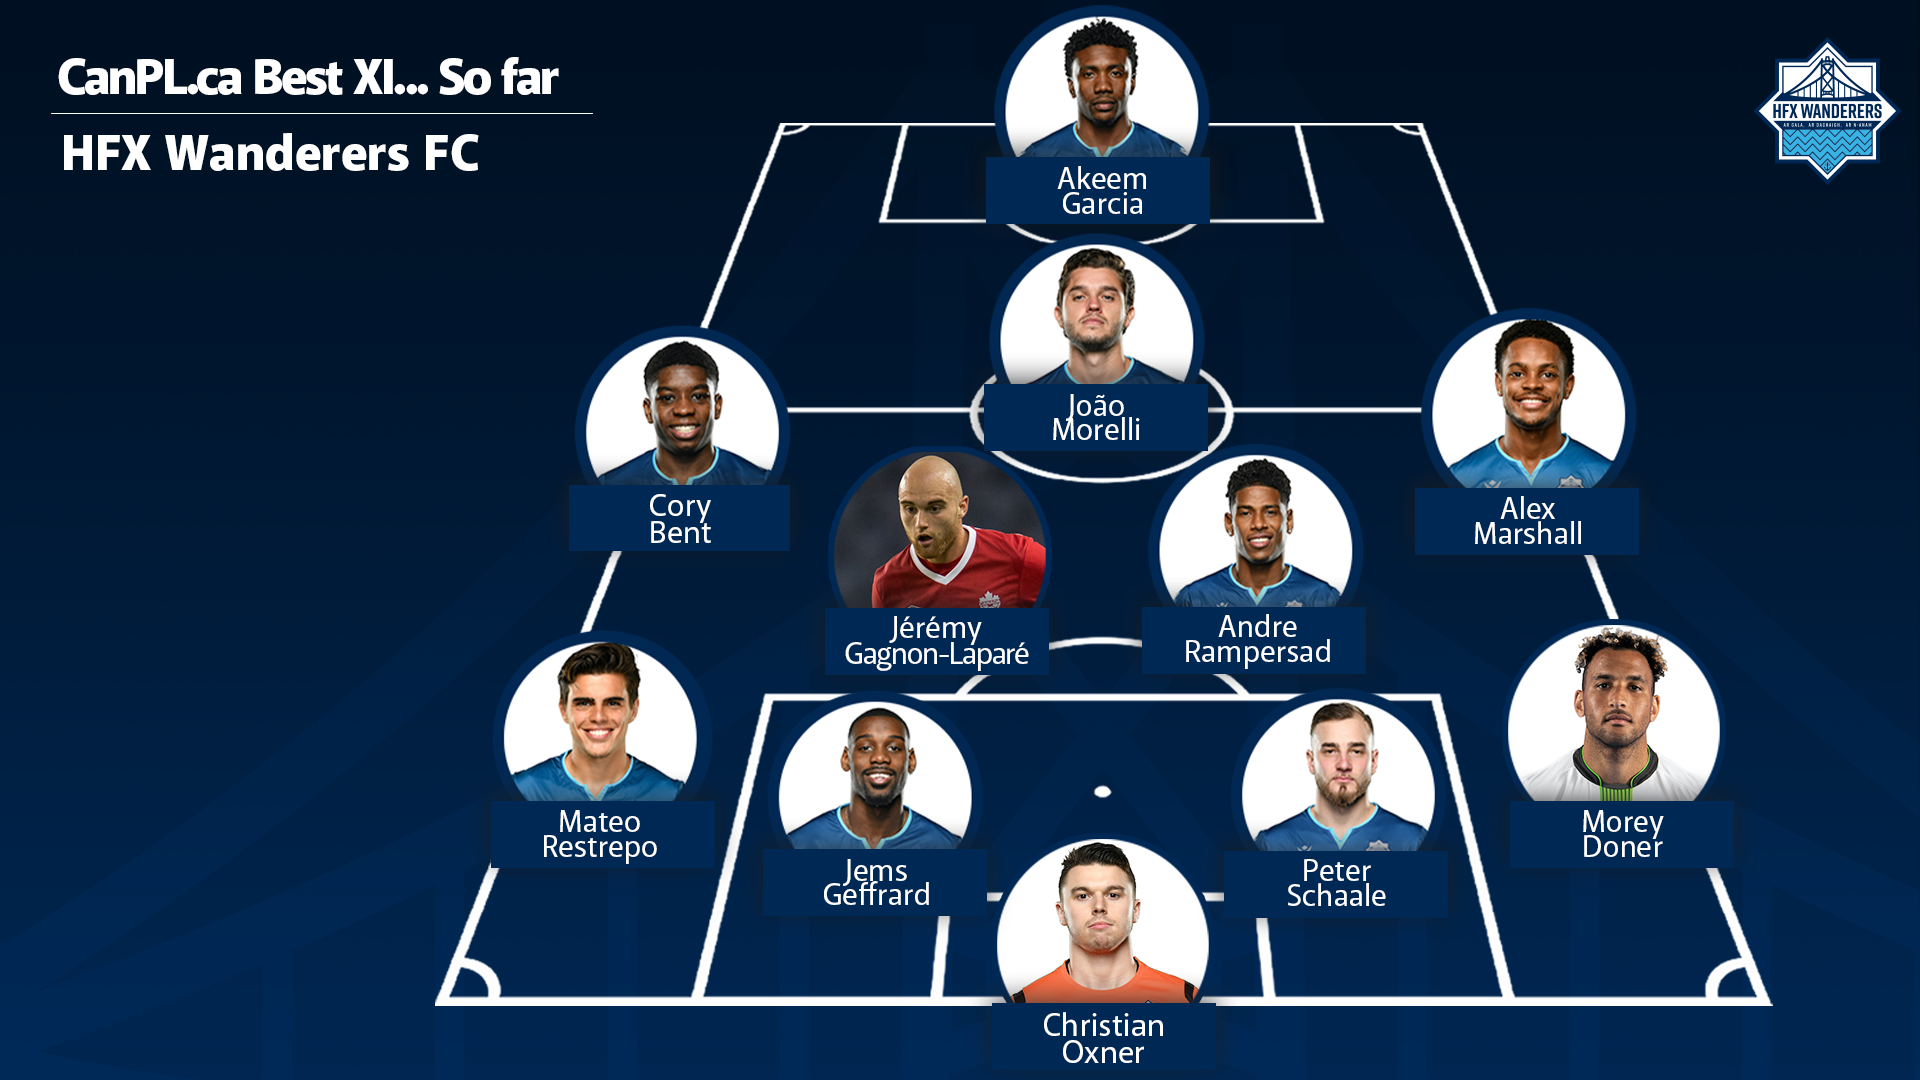 CanPL.ca's predicted starting XI for HFX Wanderers FC.